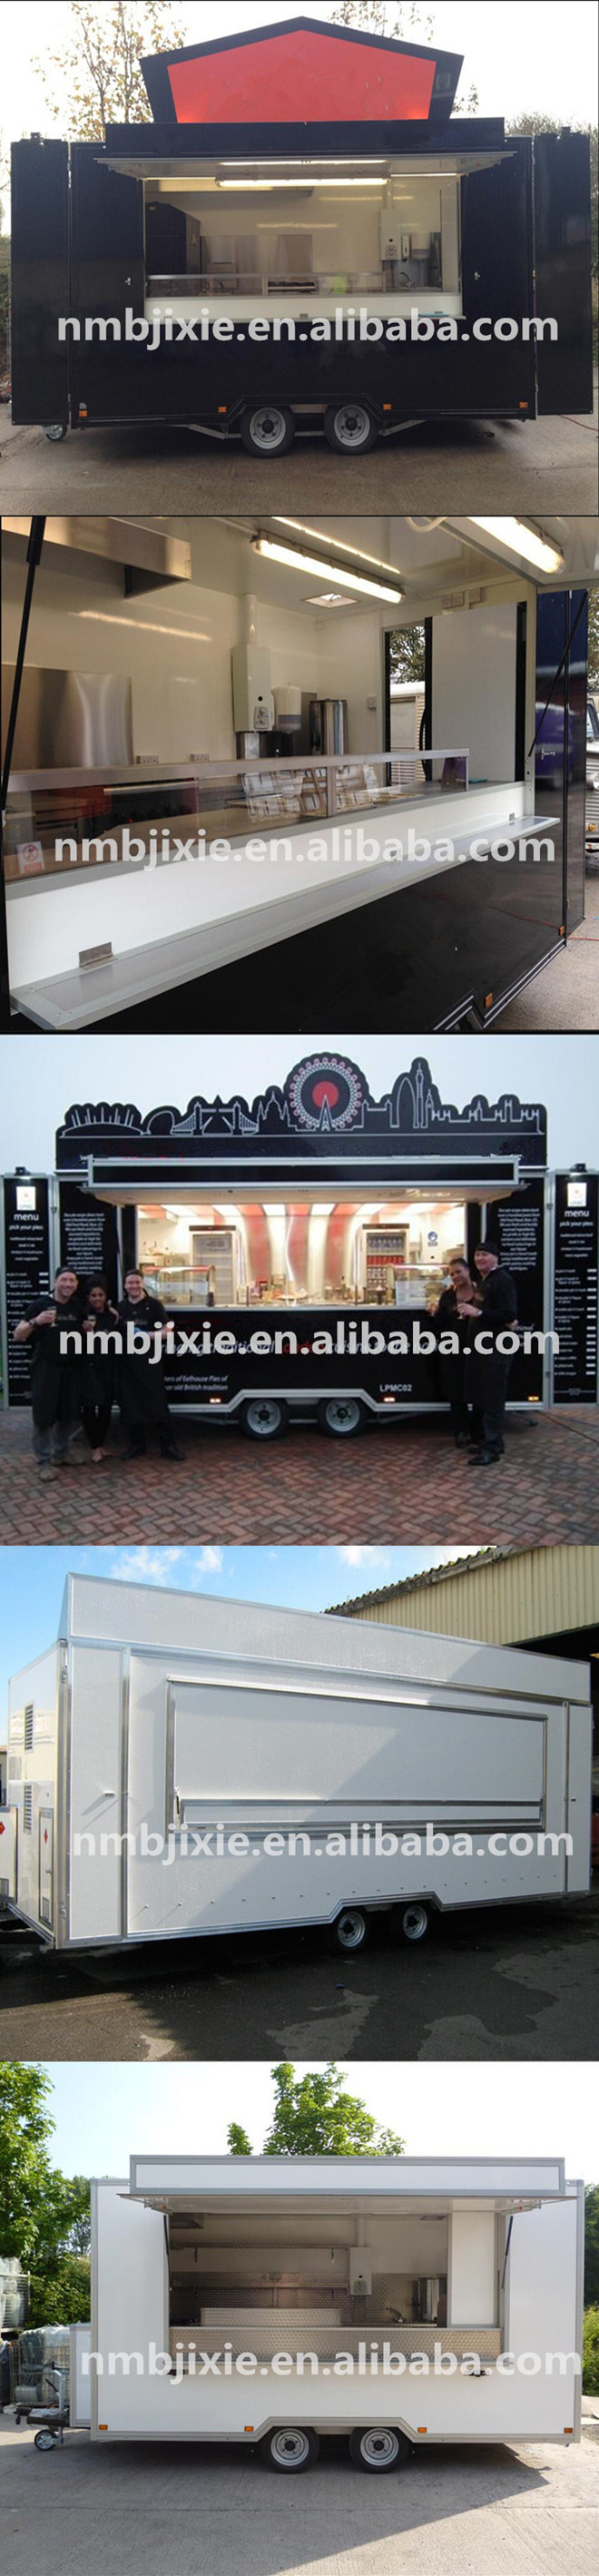 Small Price Outdoor Used Fast Food Mobile Kitchen Barbecue Trailer ...